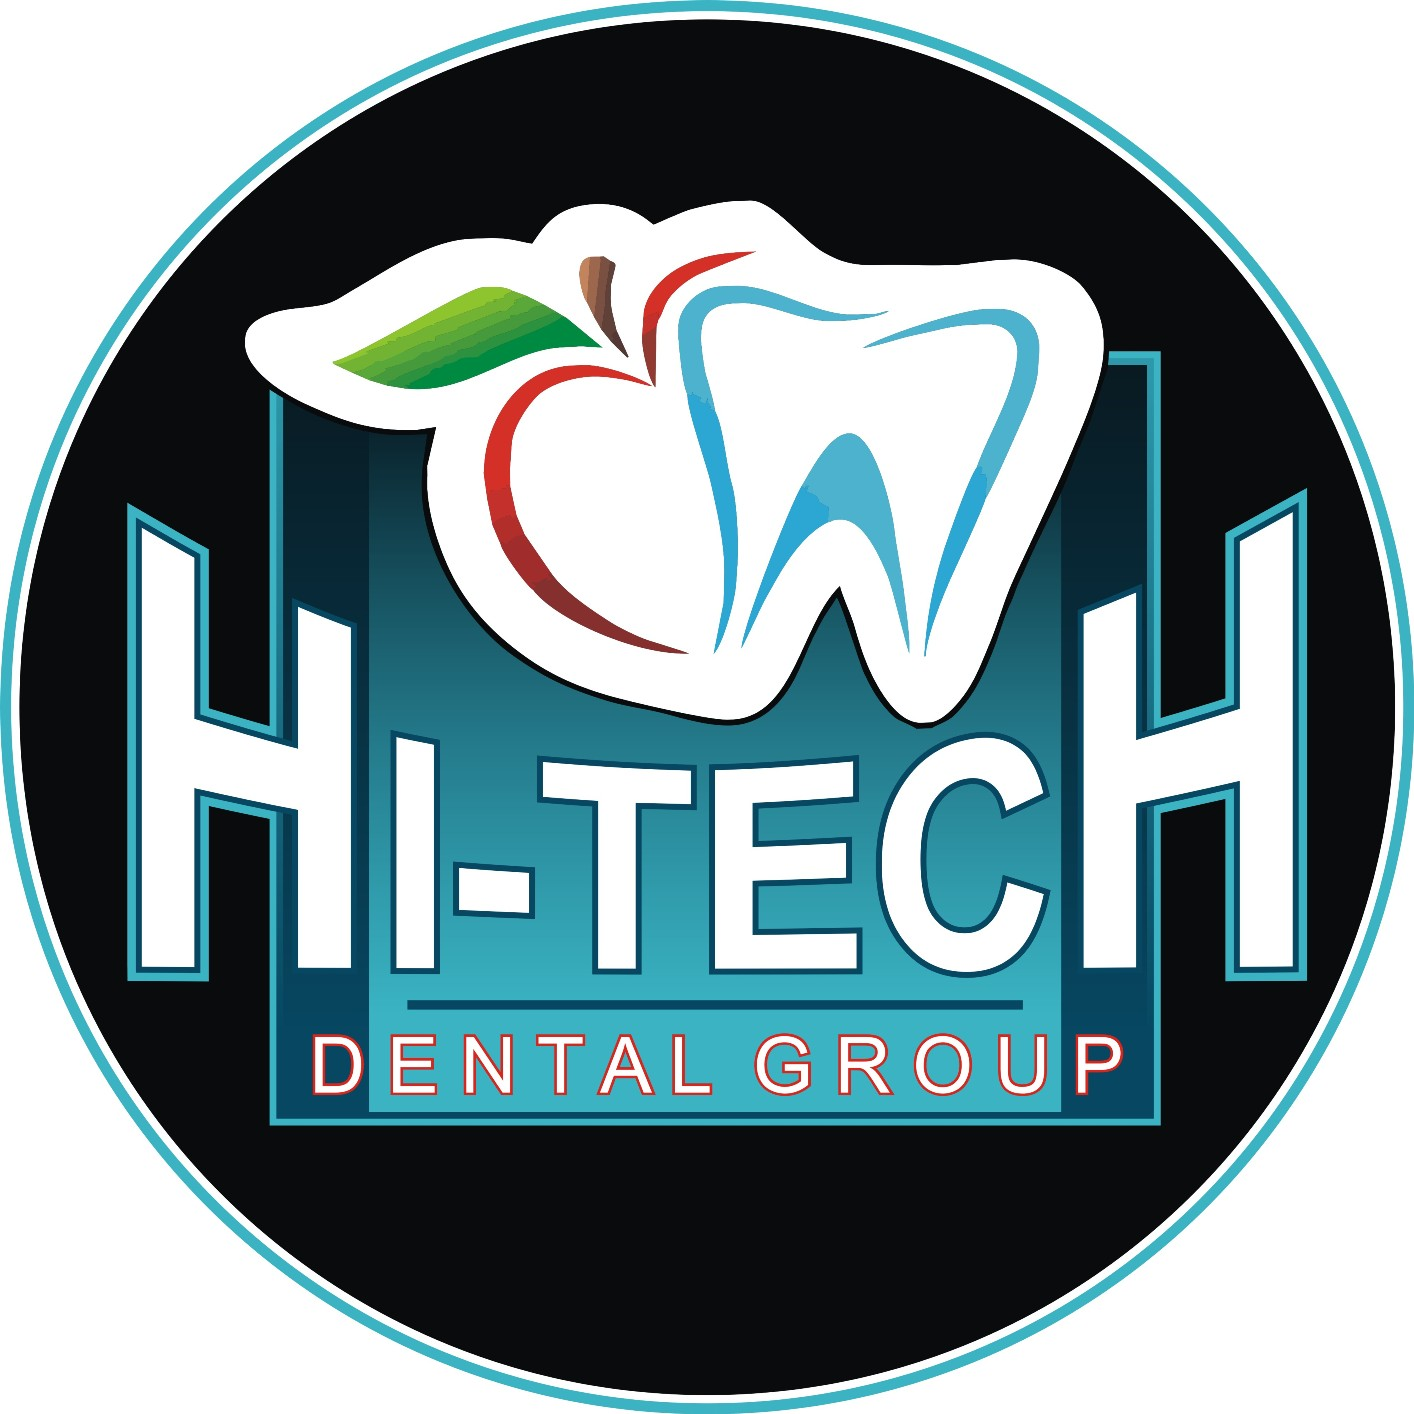 Hi Tech Dental Group KVZ, LLC